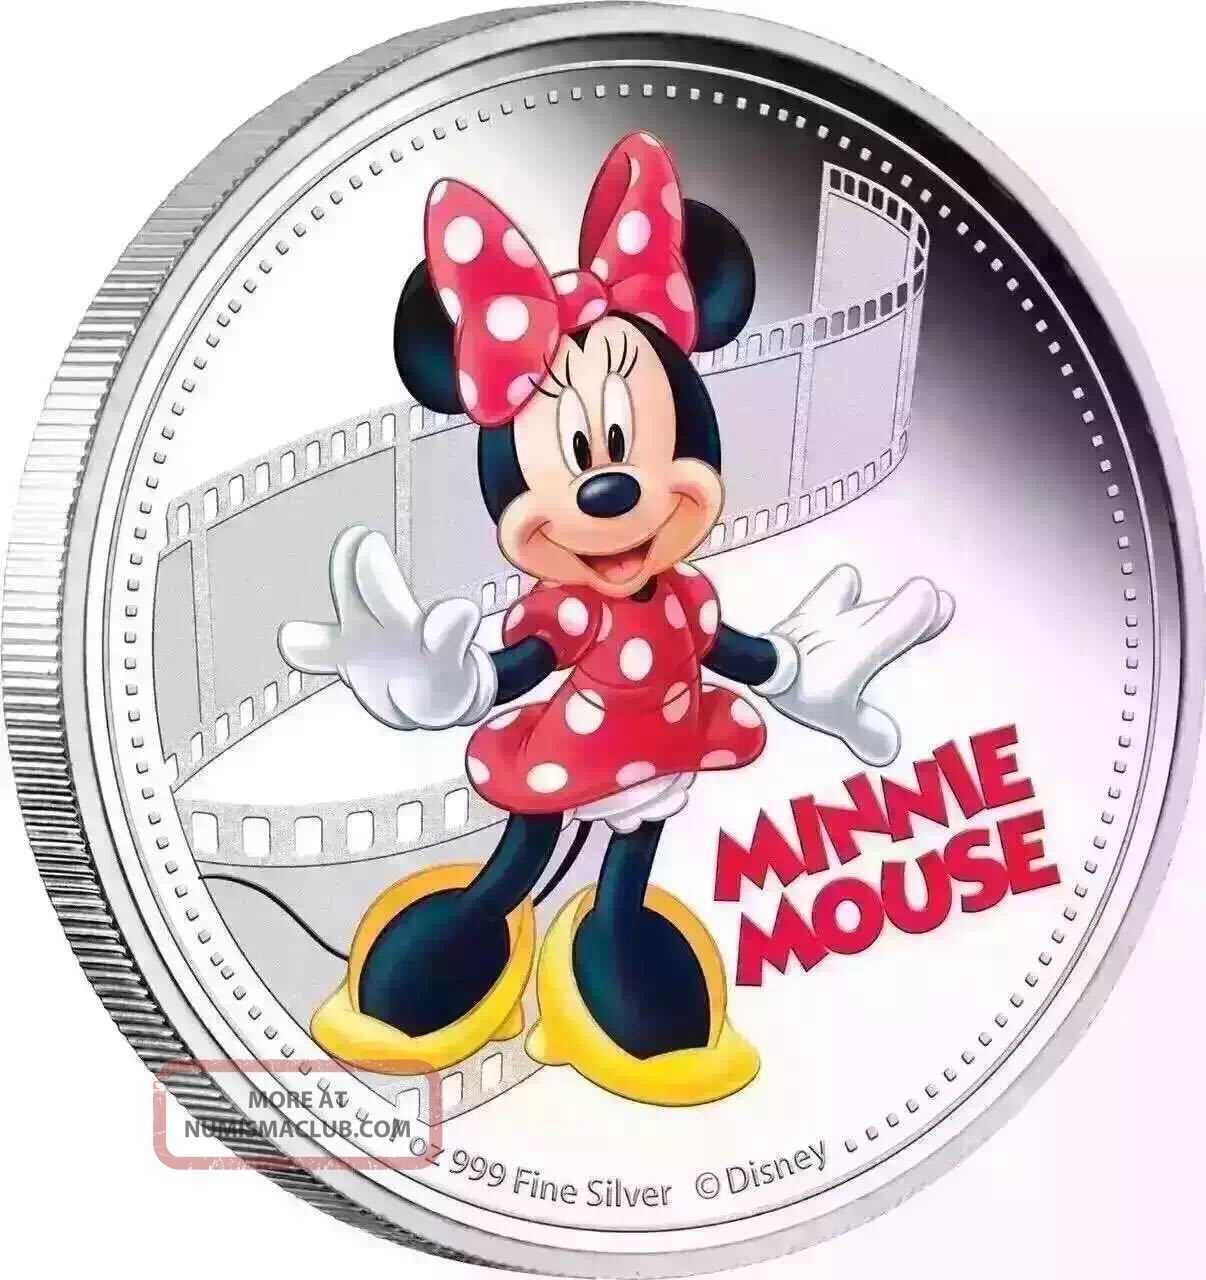 Minnie Mouse 2017 - D Isney Mickey & Friends 1 Oz Silver Coin 037 Coins: World photo